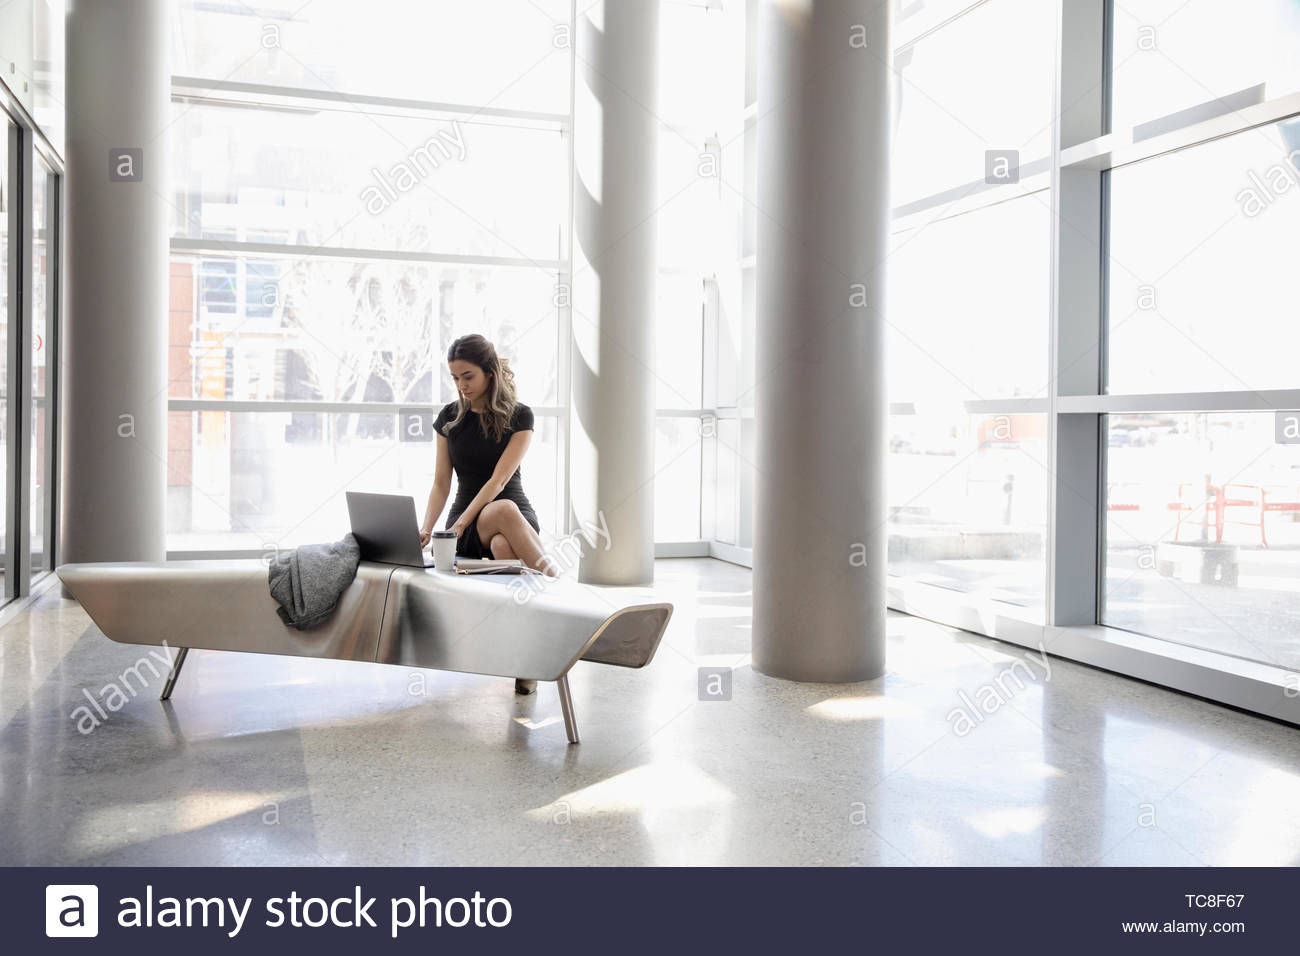 Businesswoman working at laptop in office lobby - Stock Image